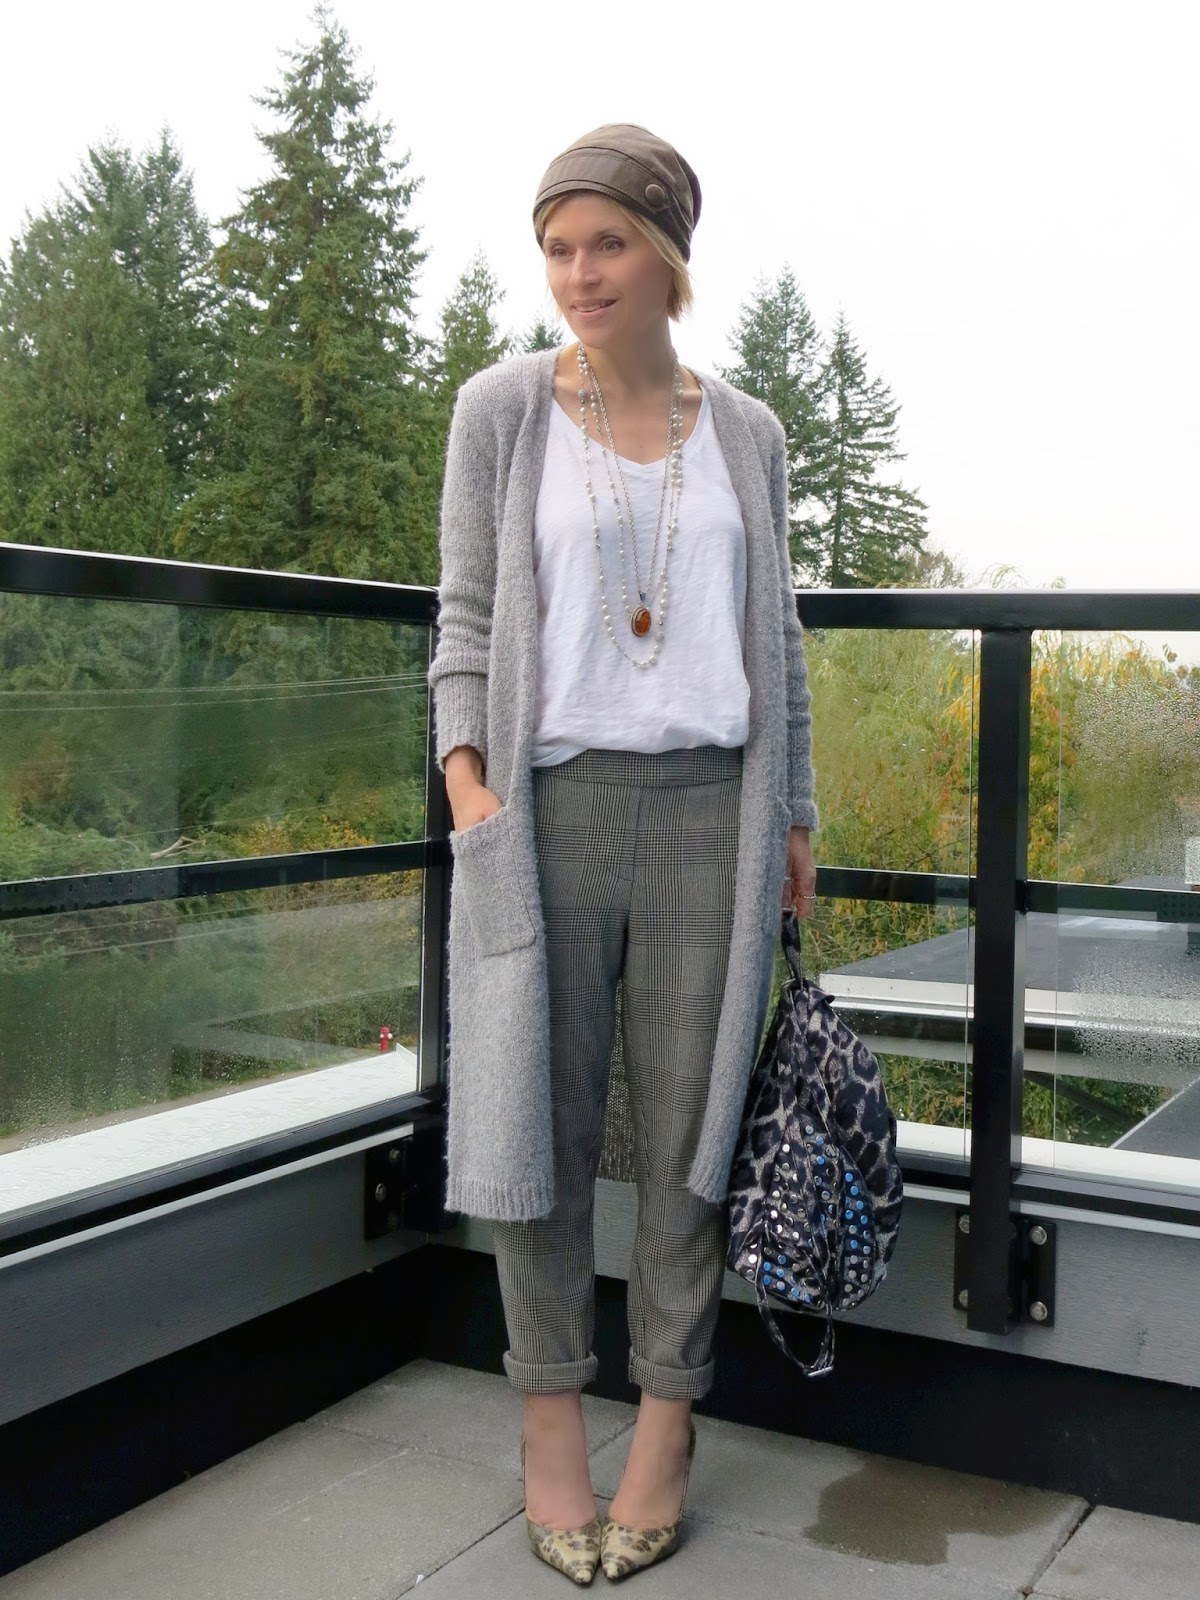 Pumped up:  slouchy pants and t-shirt with a long cardigan, beanie, and leopard pumps